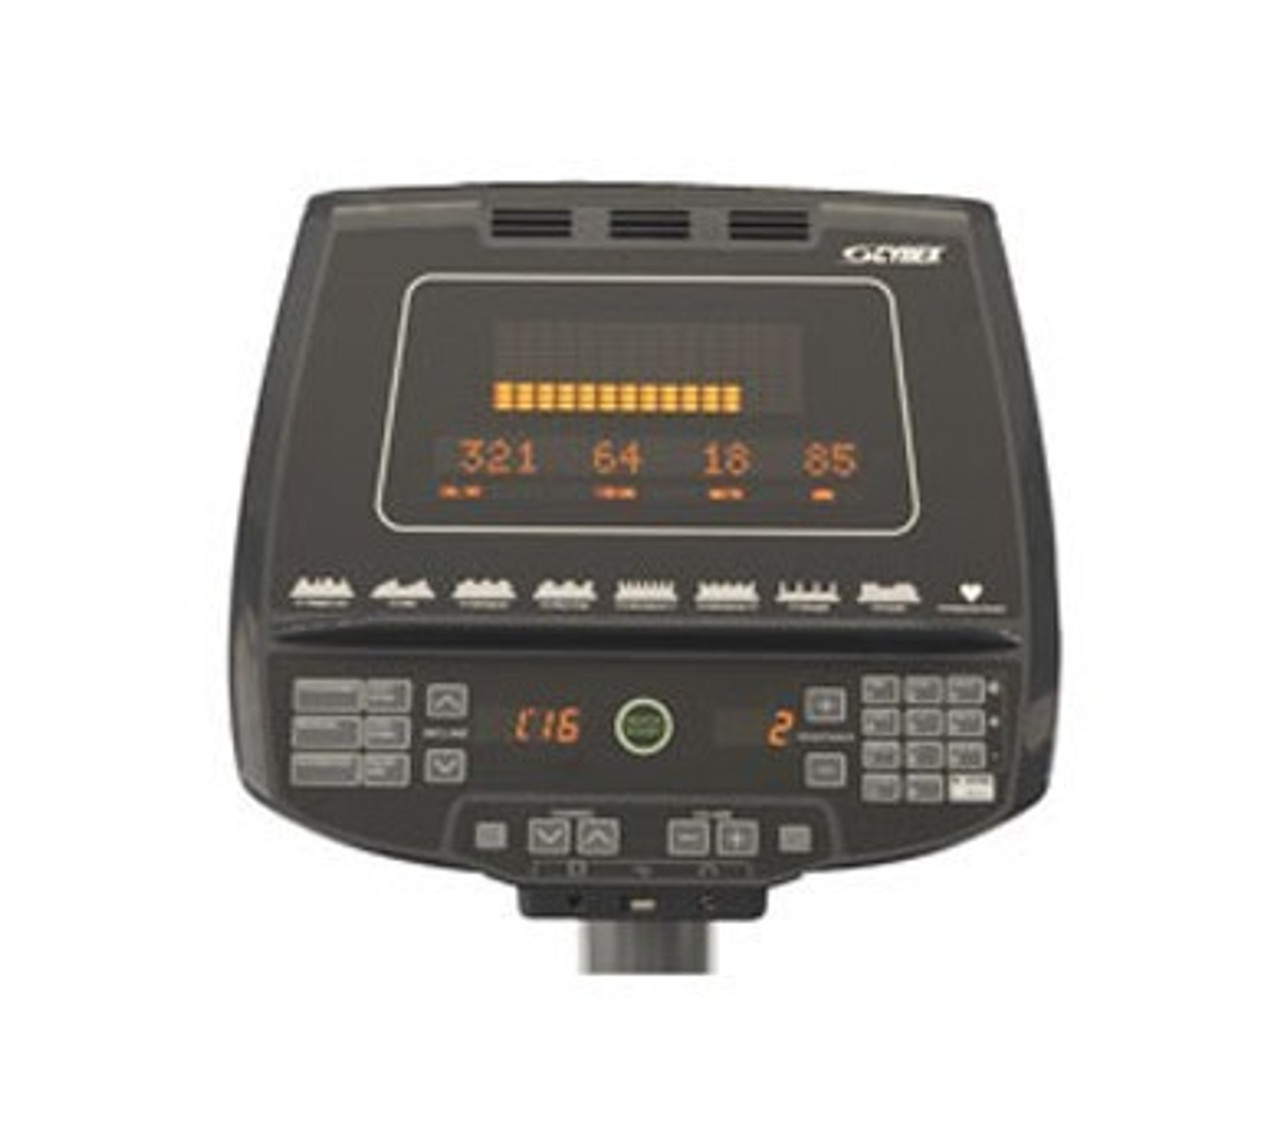 Cybex Arc Trainer 750 AT